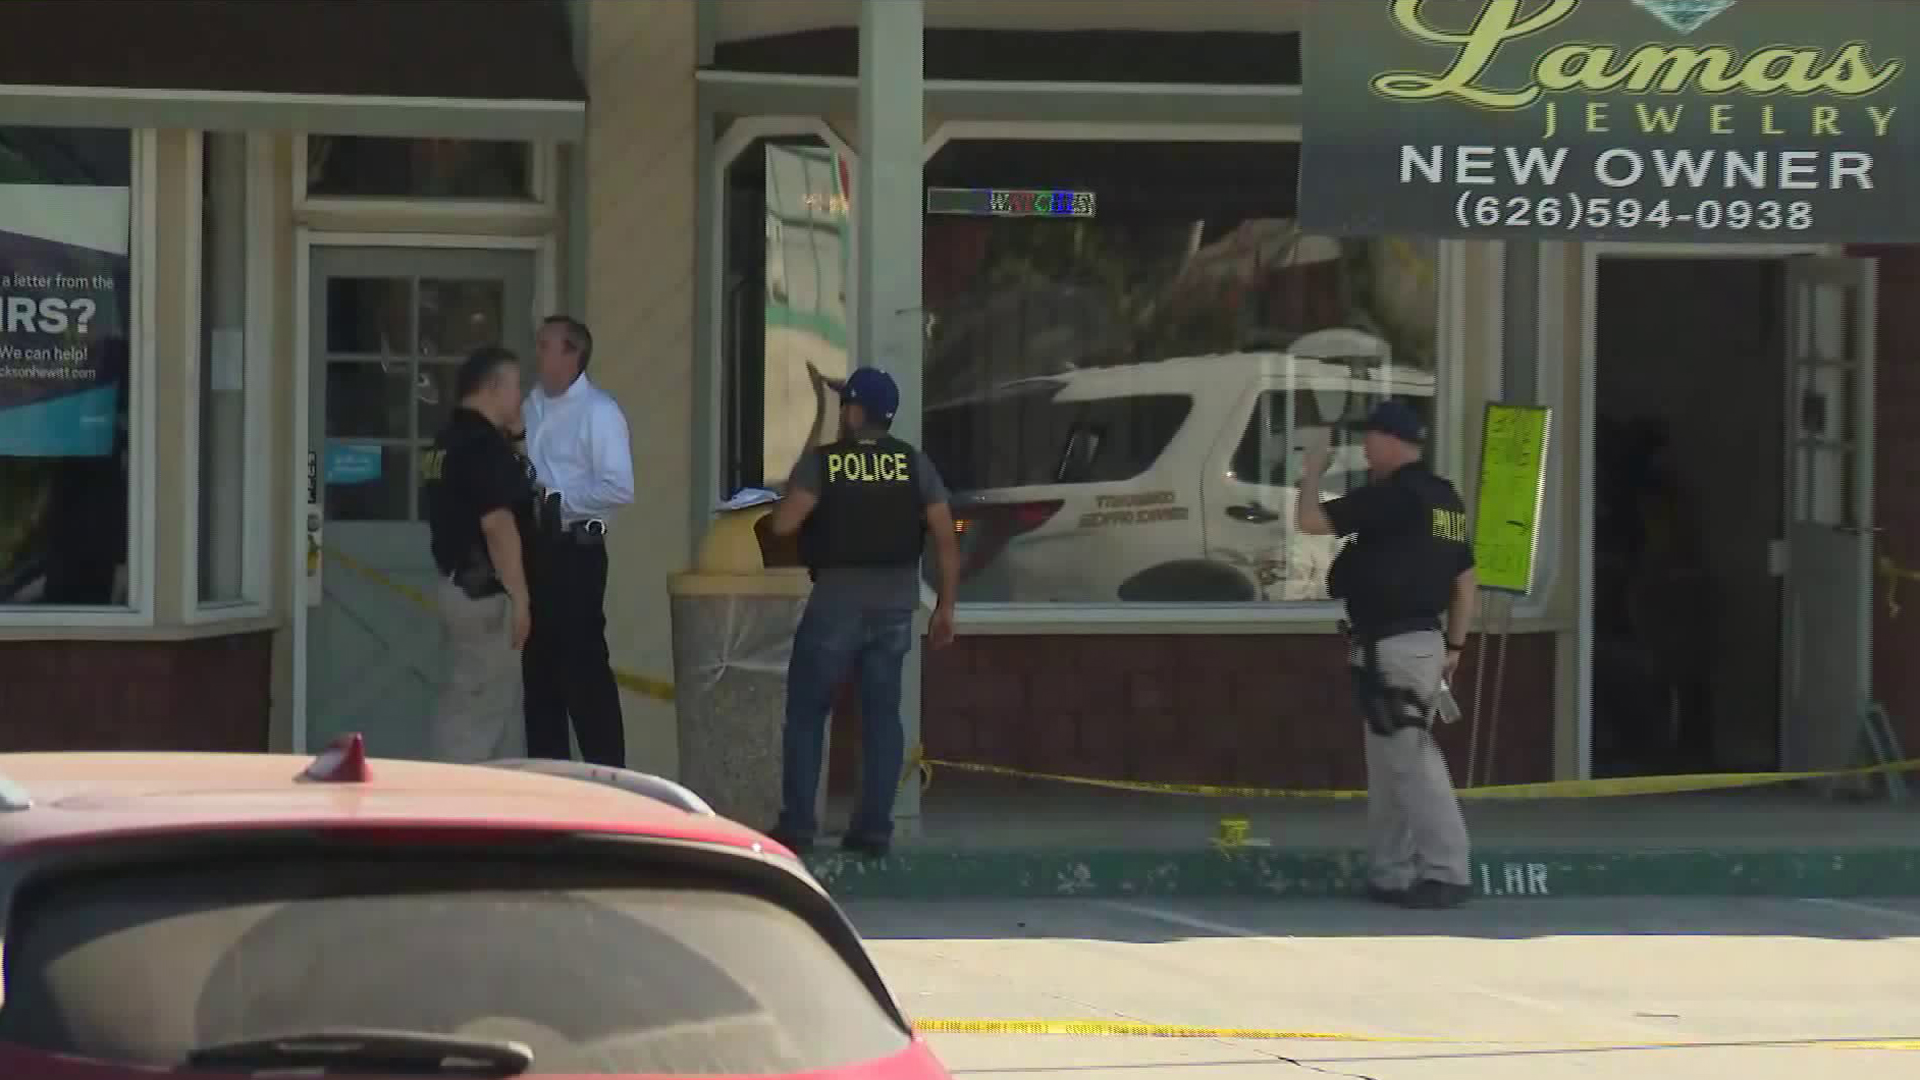 Officials investigate the scene of a jewelry store robbery that led to a fatal police shooting in Glendora on Sept. 6, 2019. (Credit: KTLA)